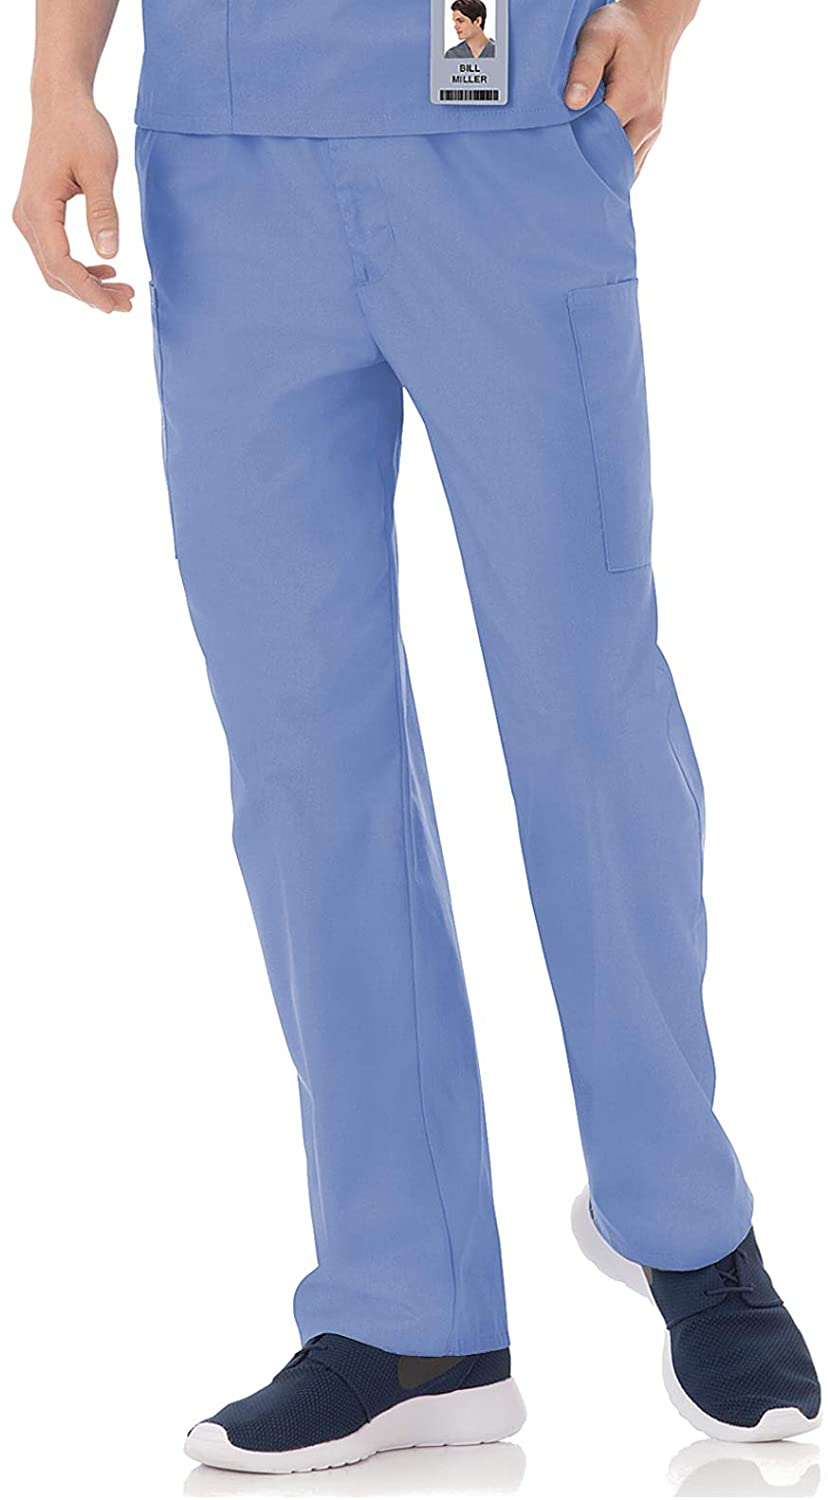 White Swan Fundamentals 14843 Unisex Five Pocket Scrub Pant